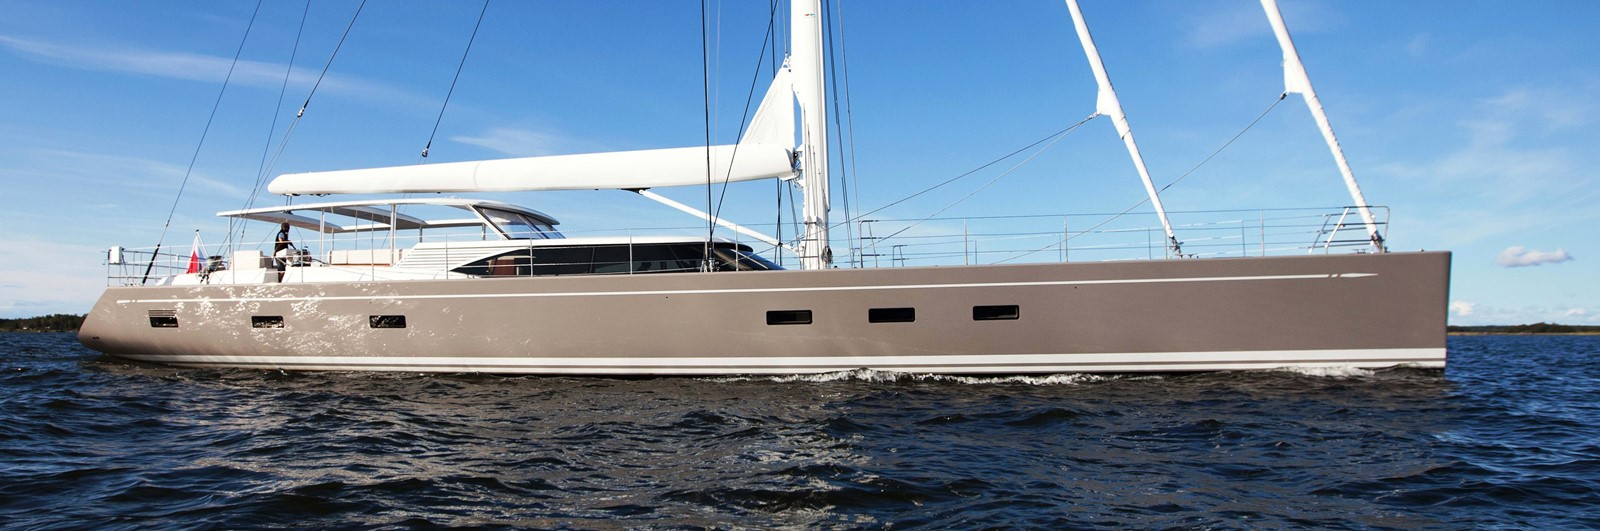 2014 NAUTOR'S SWAN  Performance Sailboat 1768950